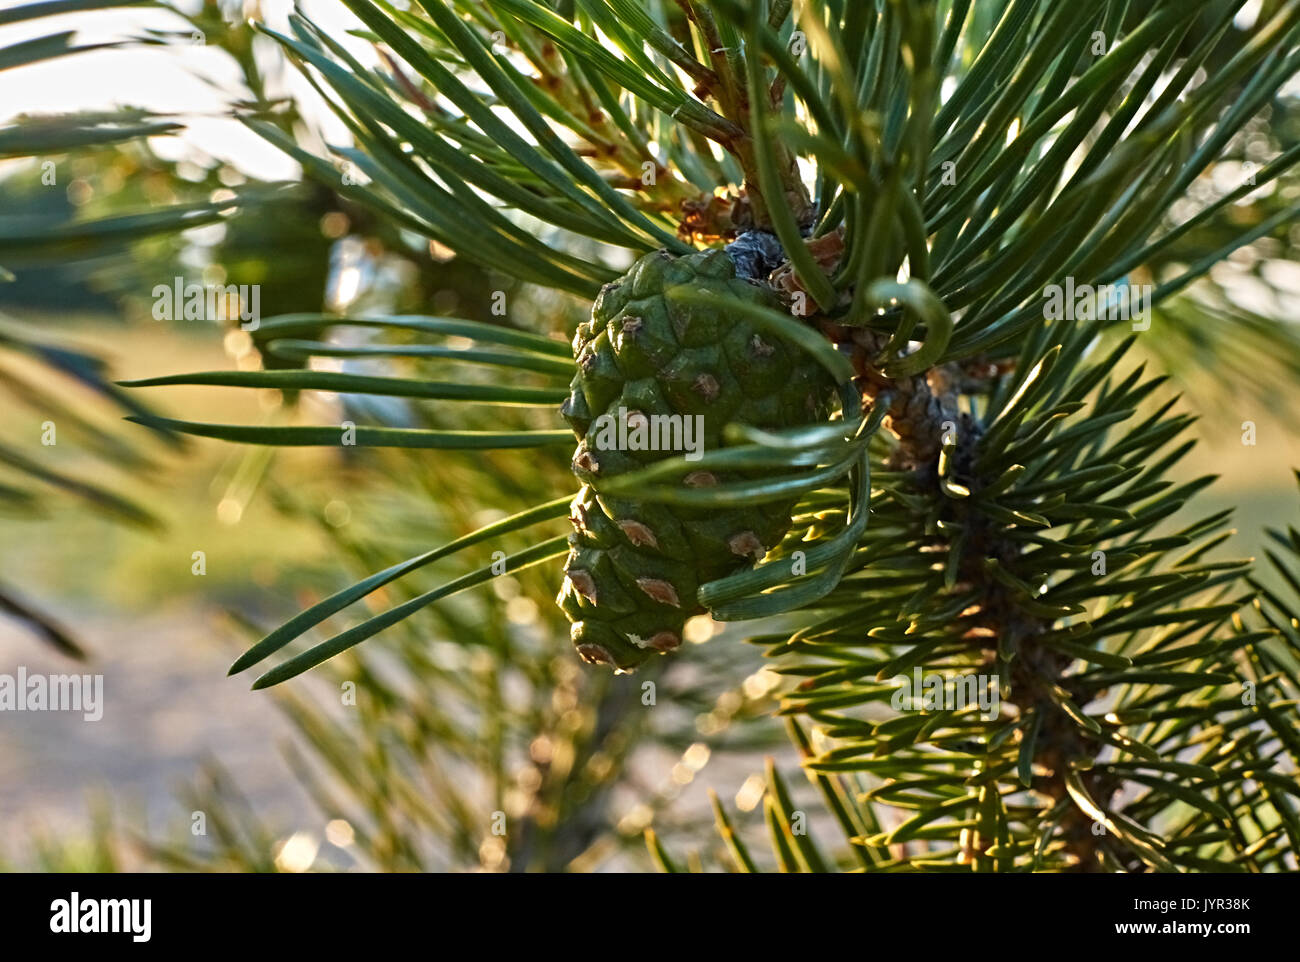 On the branch of spruce there is a green cone. Close-up. Macro. Kostroma, the Golden Ring of Russia. Landscape, Stock Photo